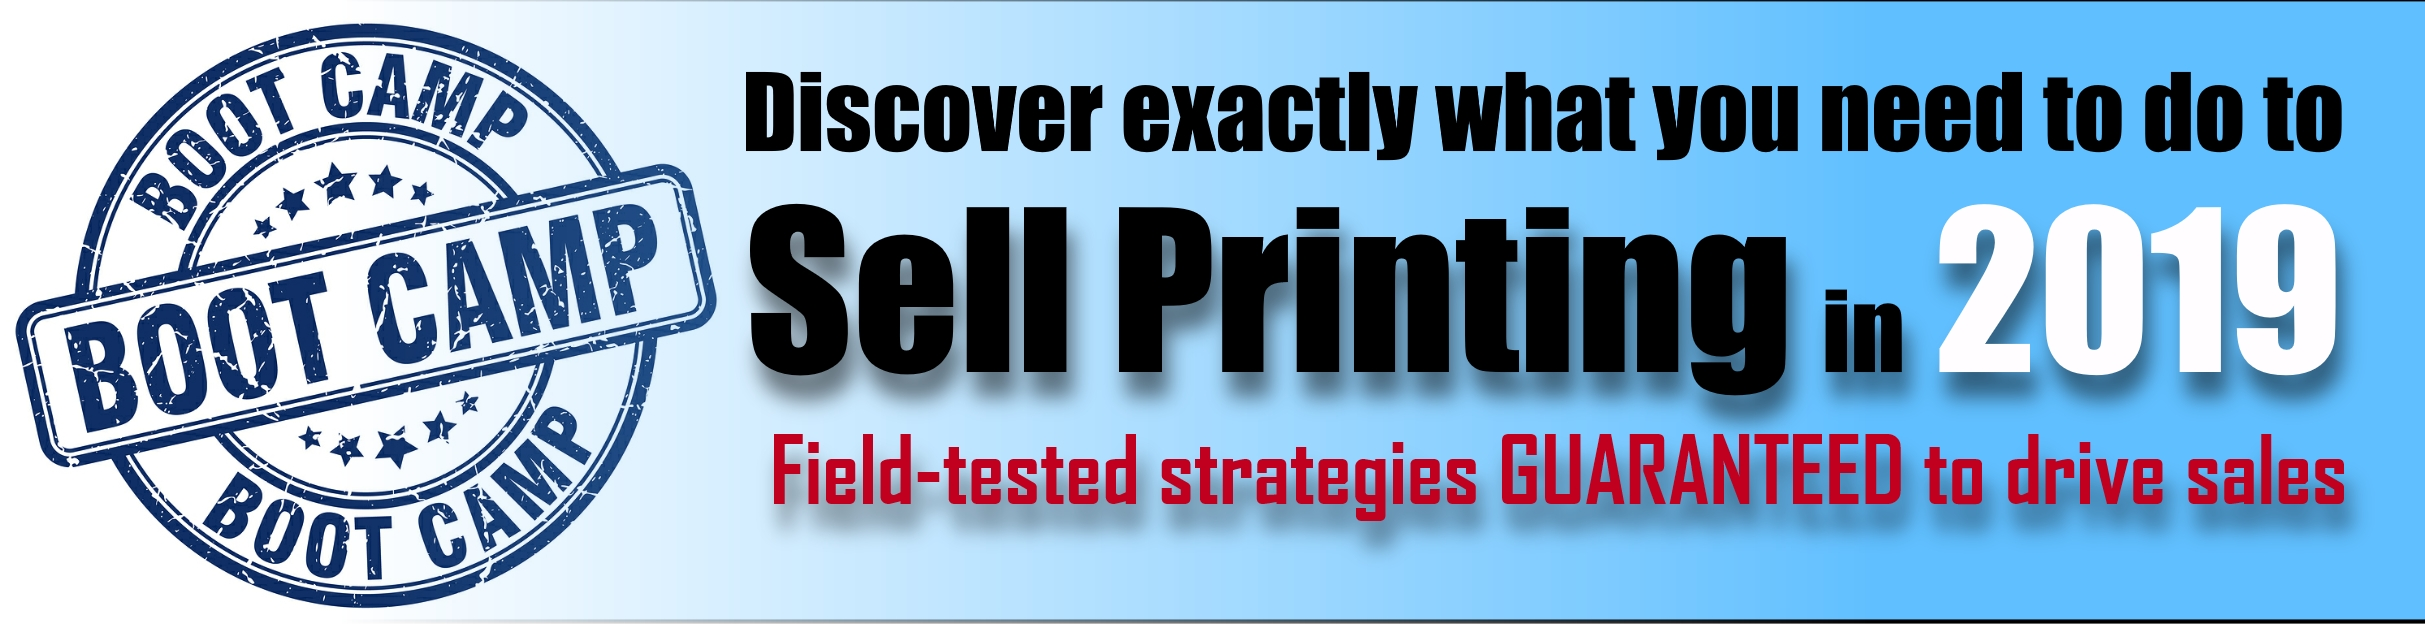 The Printing Industry's Leading Sales Trainer